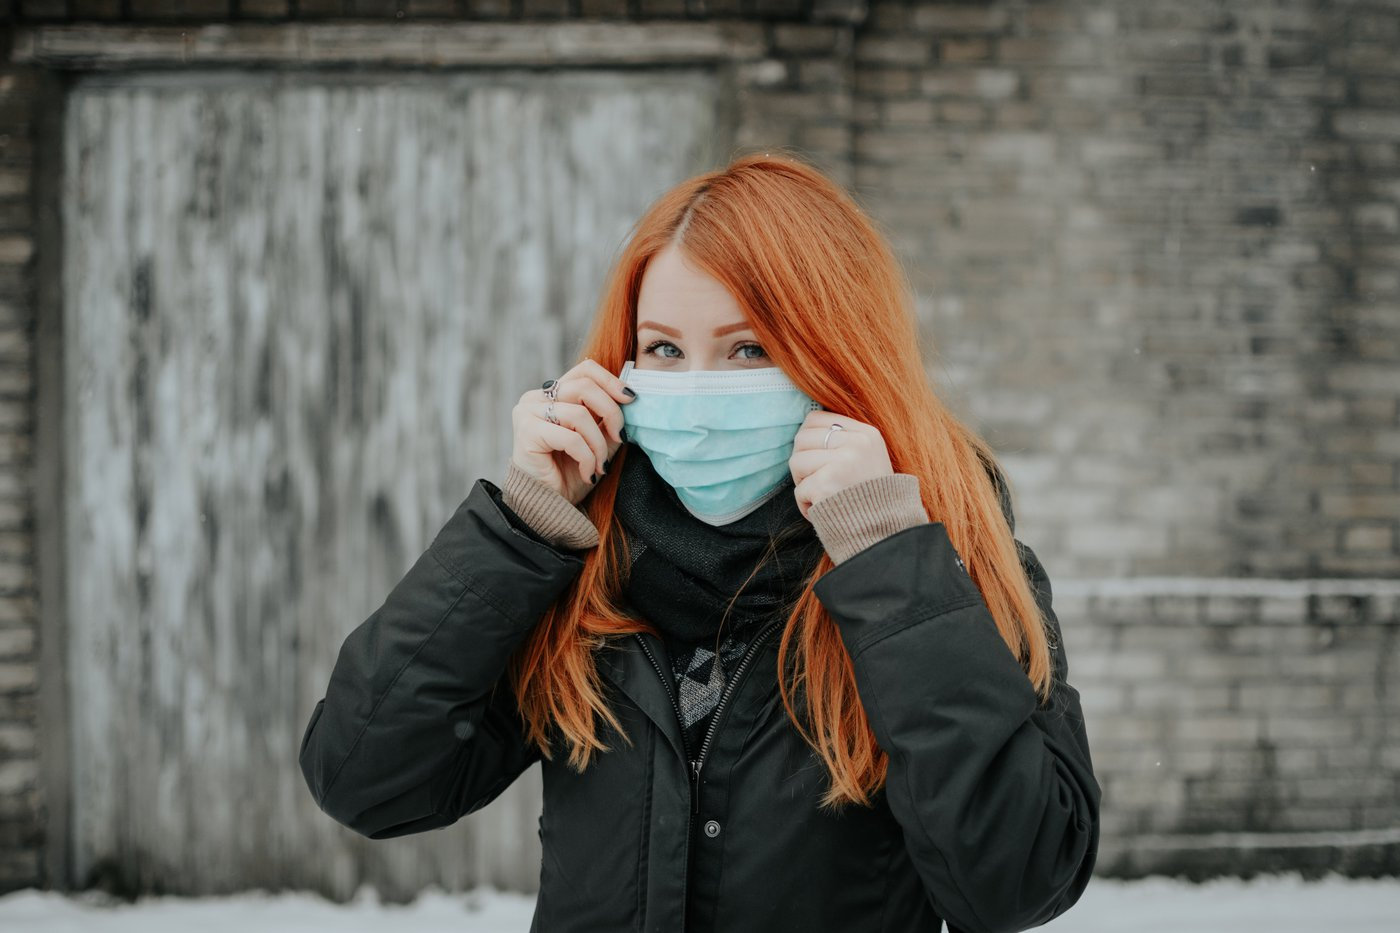 A woman with long red hair holds a face mask over her mouth and nose.